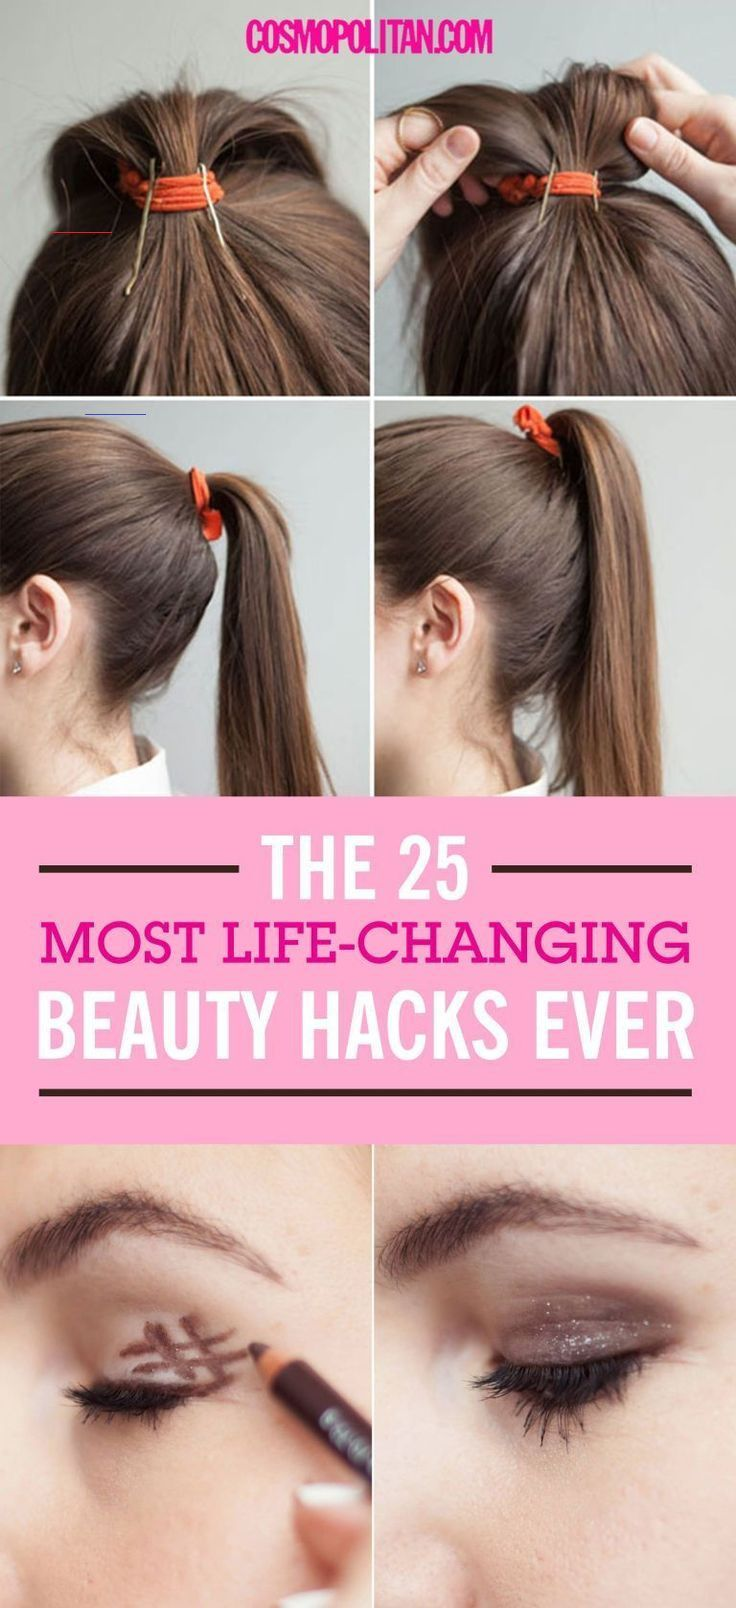 12 Awesome Health and Beauty Tips from Viral Posts These 12 Awesome Health and Beauty Tips from viral posts are GREAT! There's so much awesoem curated info, and SO MANY THINGS I had never thought of! I'm definitely pinning for later! This has helped me SO MUCH! | Beauty Secrets, Beauty Life Hacks, Beauty Hacks For Hair, Life Hacks Hair, Makeup Life Hacks, Beauty Hacks Without Makeup, Diy Hair Hacks, Makeup Hacks Tips, Hairstyle Hacks<br> Taking care of your looks and youth can be a lot of work,